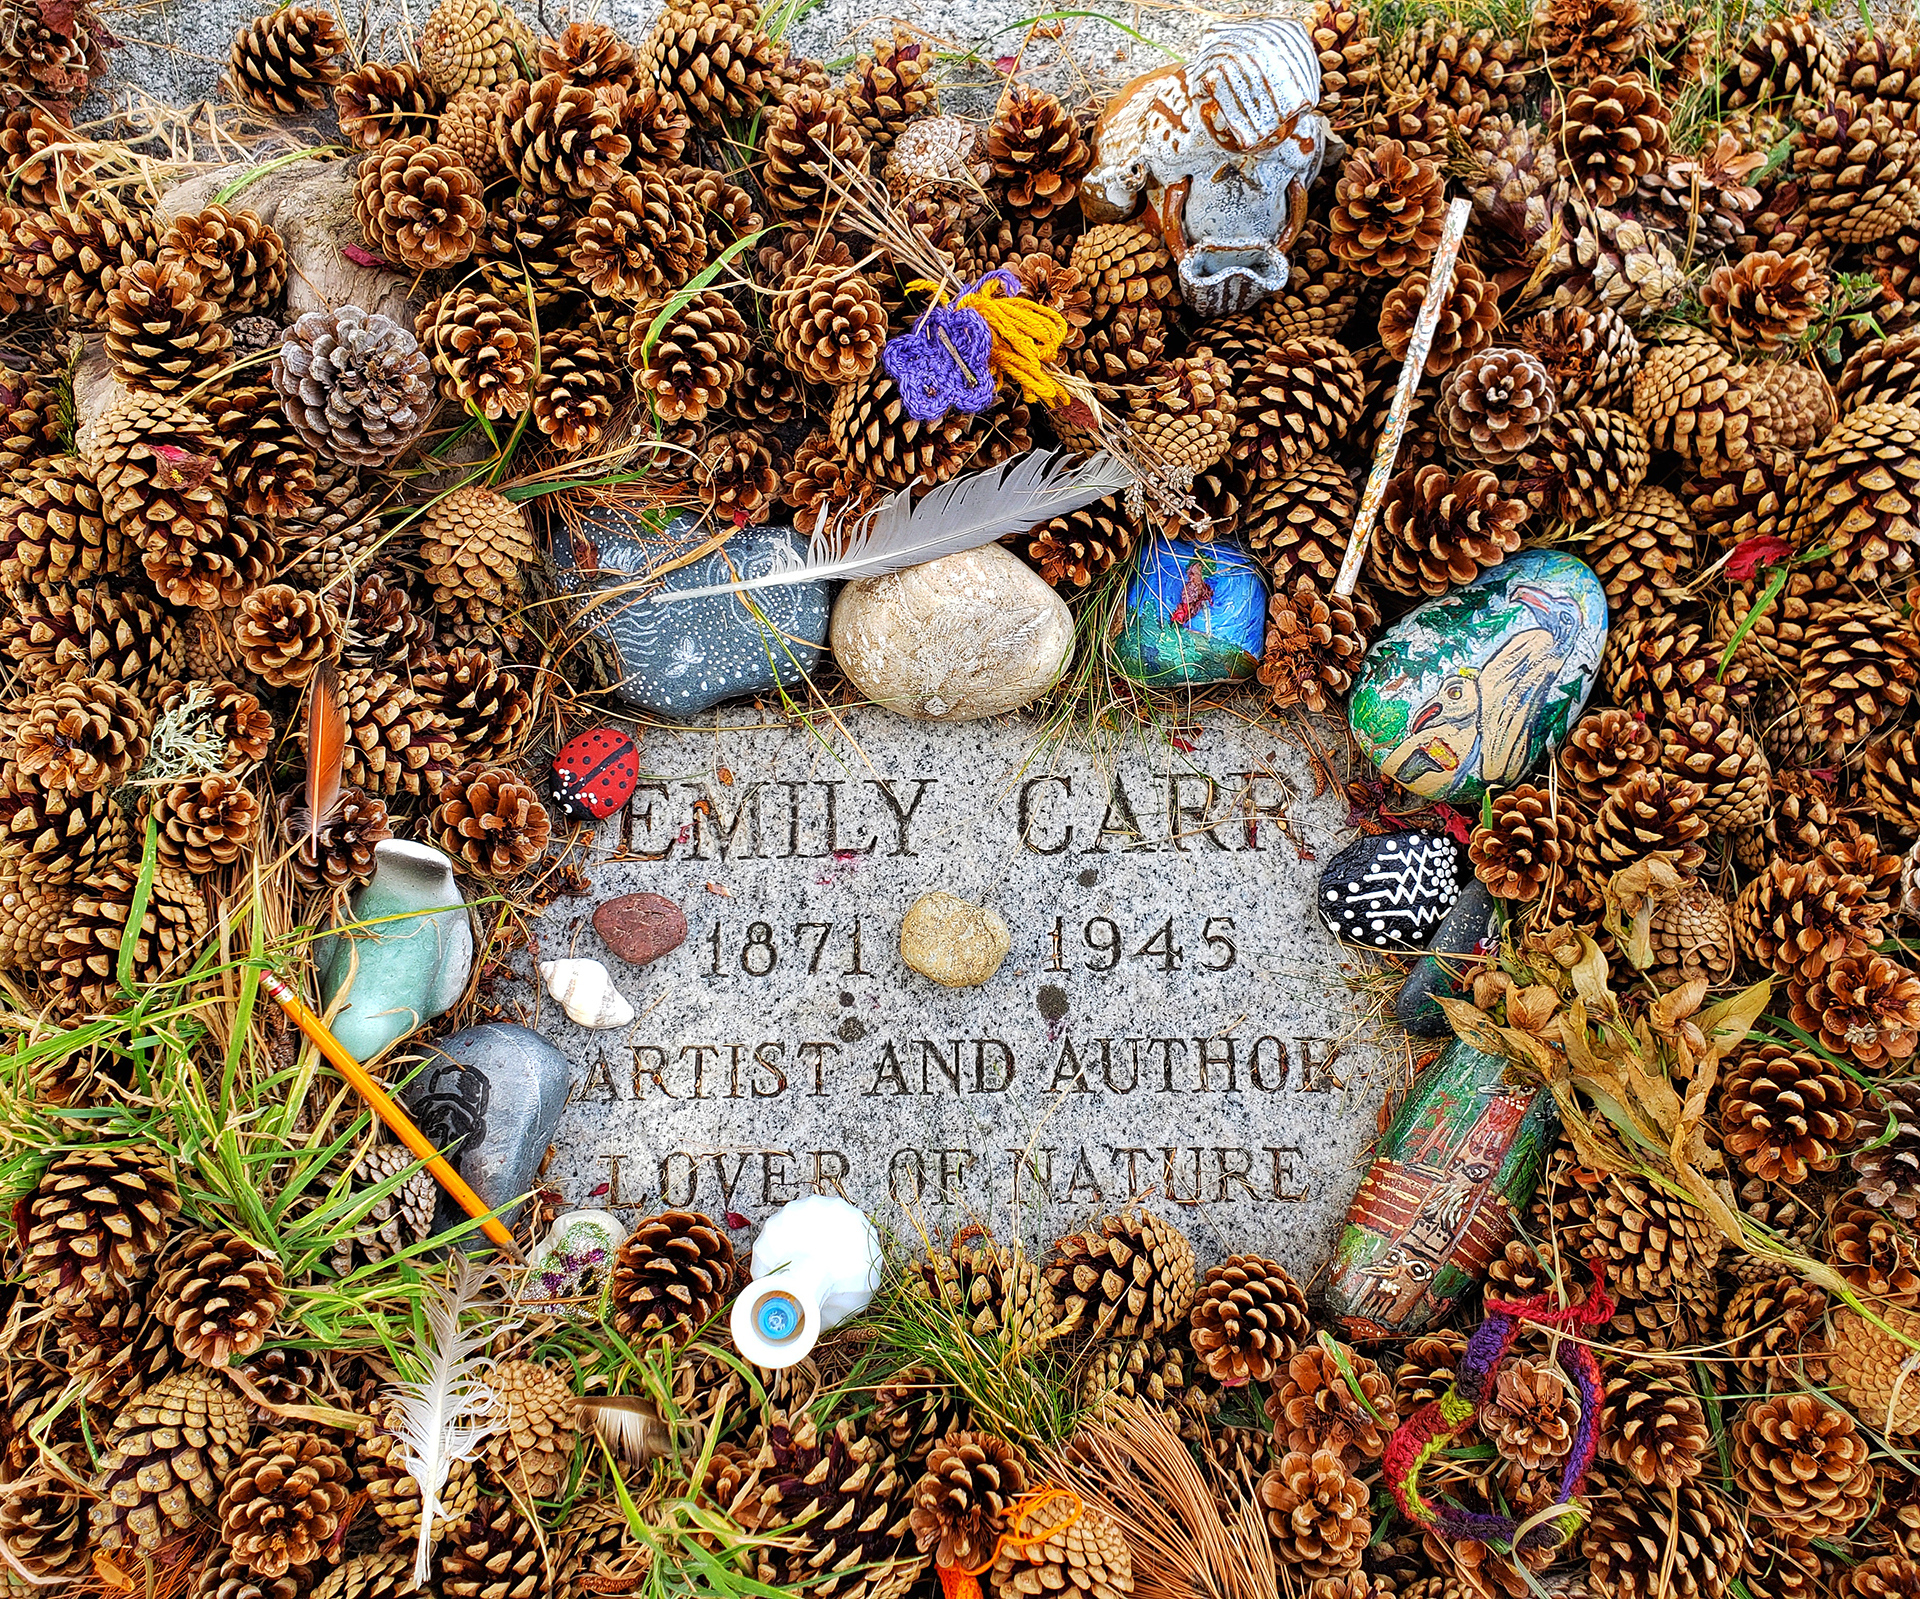 The Grave Of Emily Carr